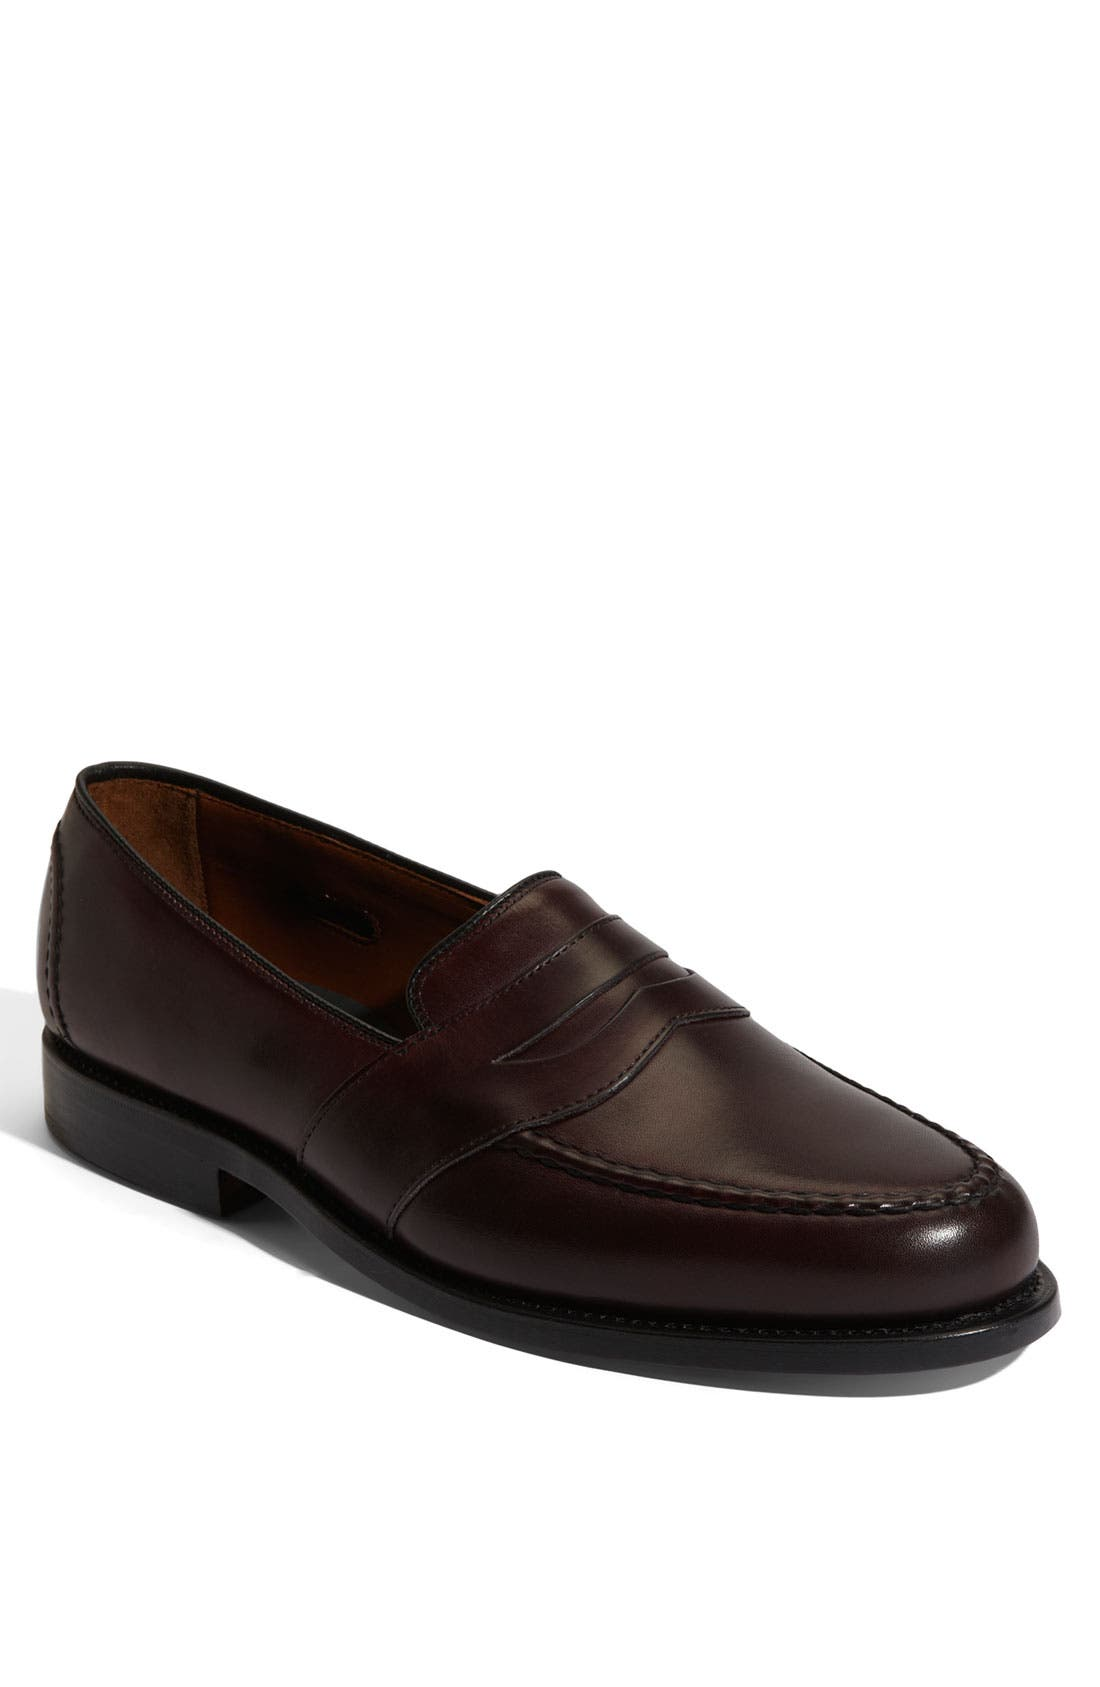 Alternate Image 1 Selected - Allen Edmonds 'Randolph' Loafer (Men)